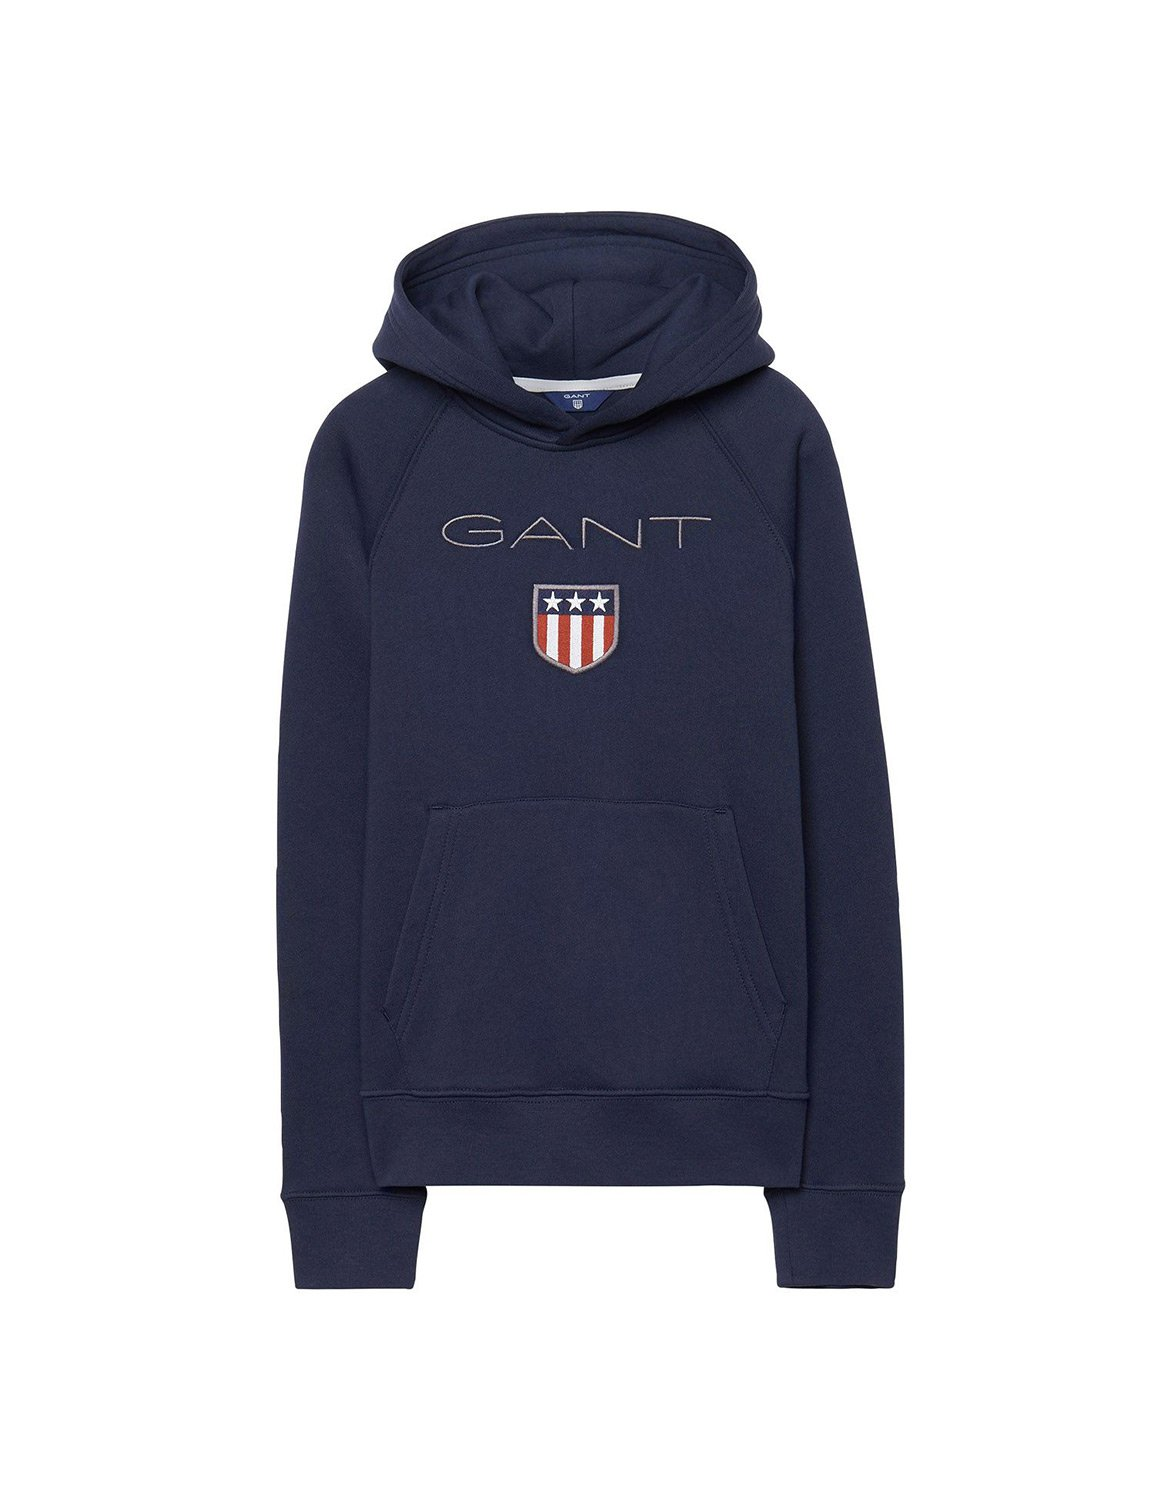 Gant Boy's Navy Hoodie With Logo in Size 7-8 Years (122-128 cm) Navy